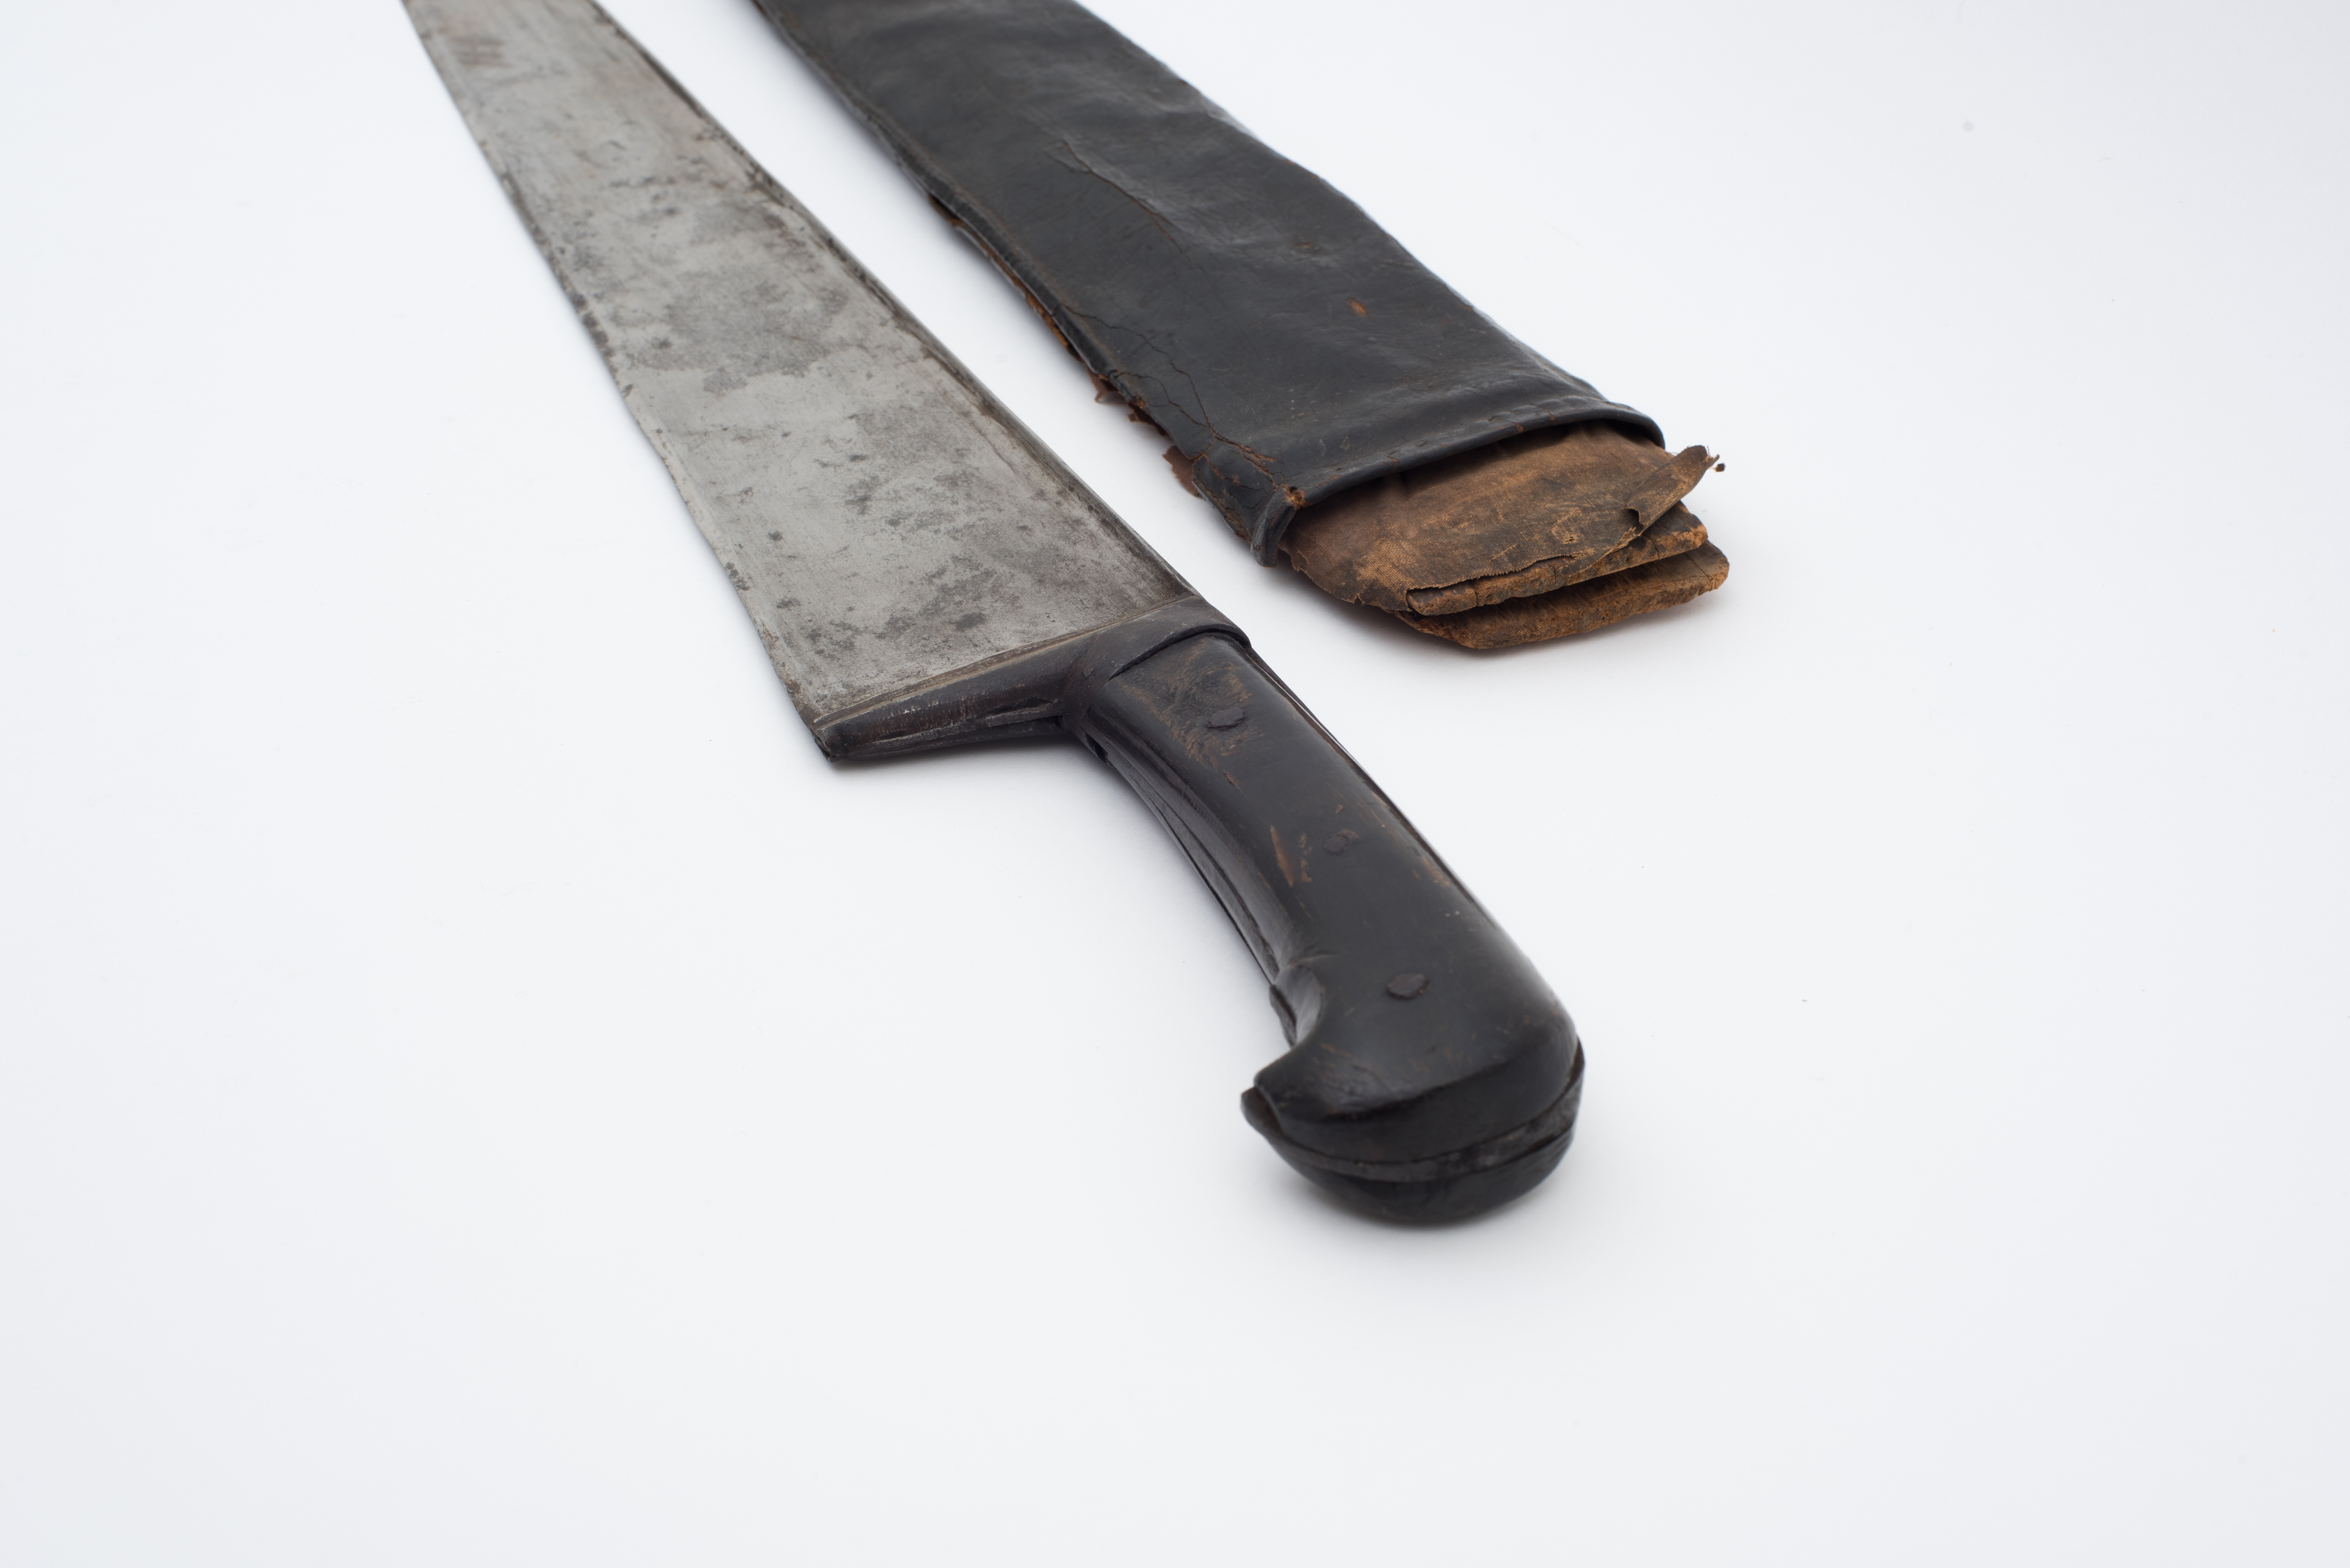 KHYBER KNIFE / SWORD with ORIGINAL SCABBARD